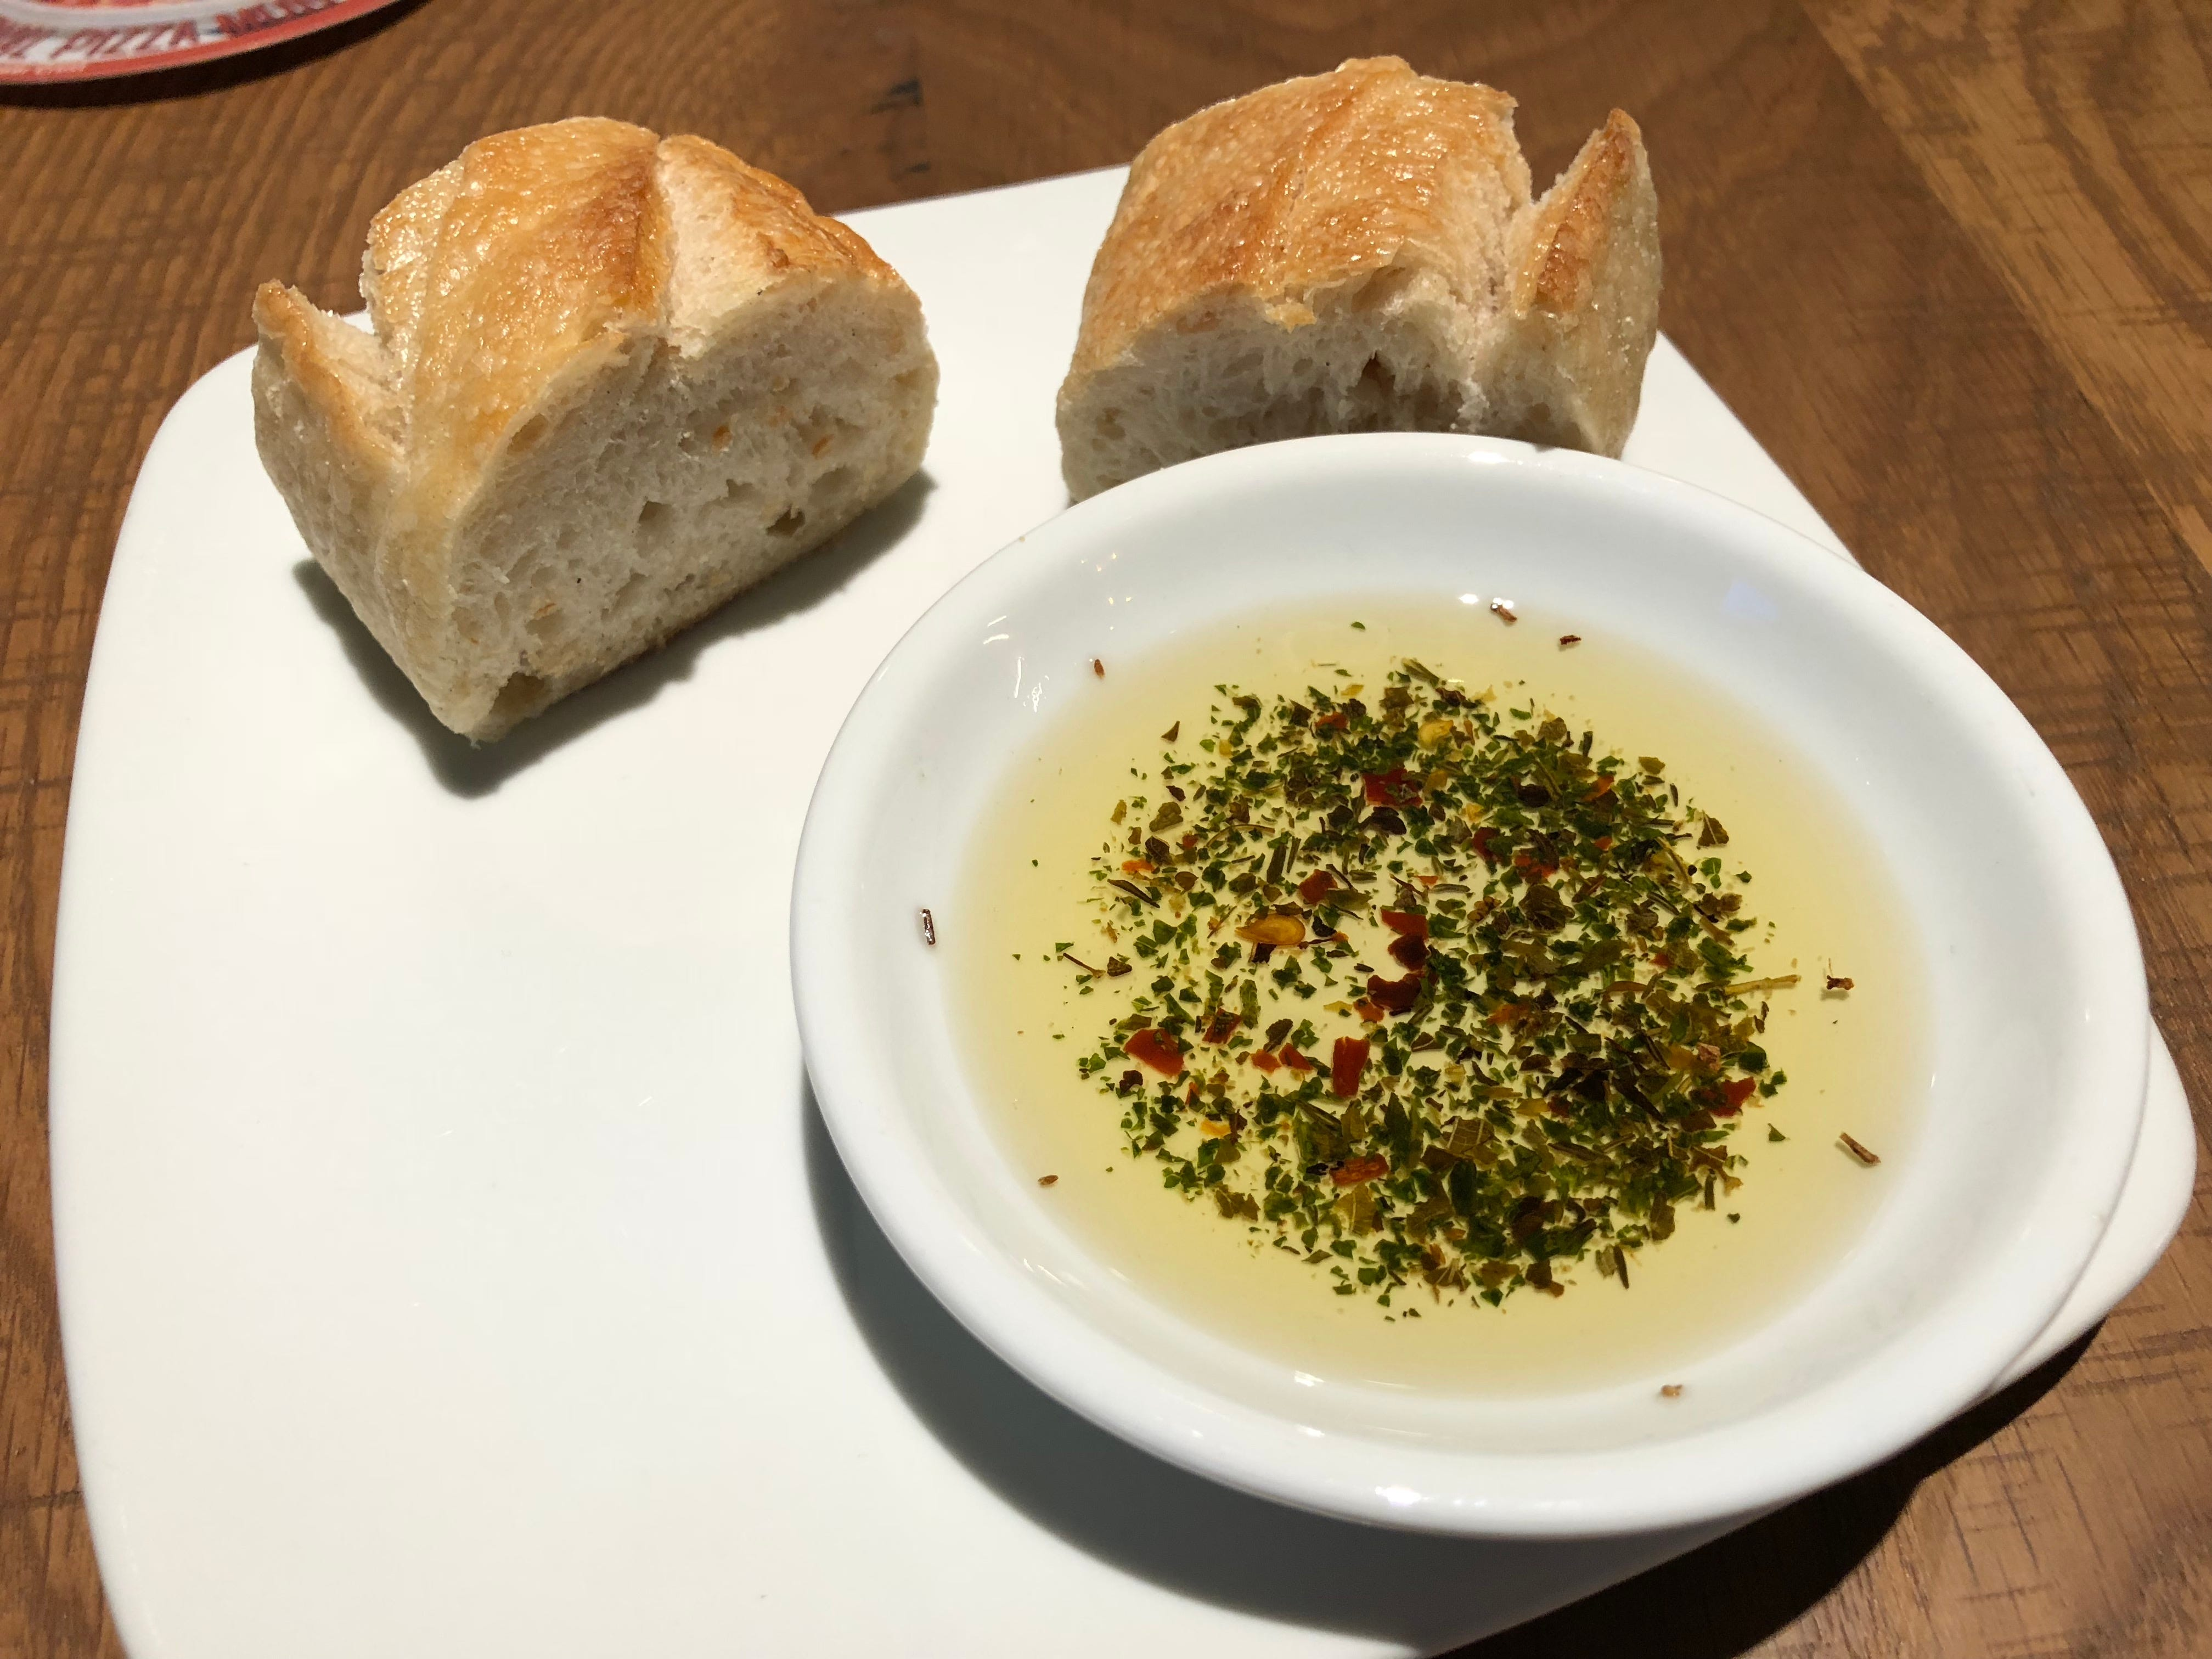 Your lunch at California Pizza Kitchen starts off with a sampling of warm, crusty bread with seasoned olive oil for dipping.